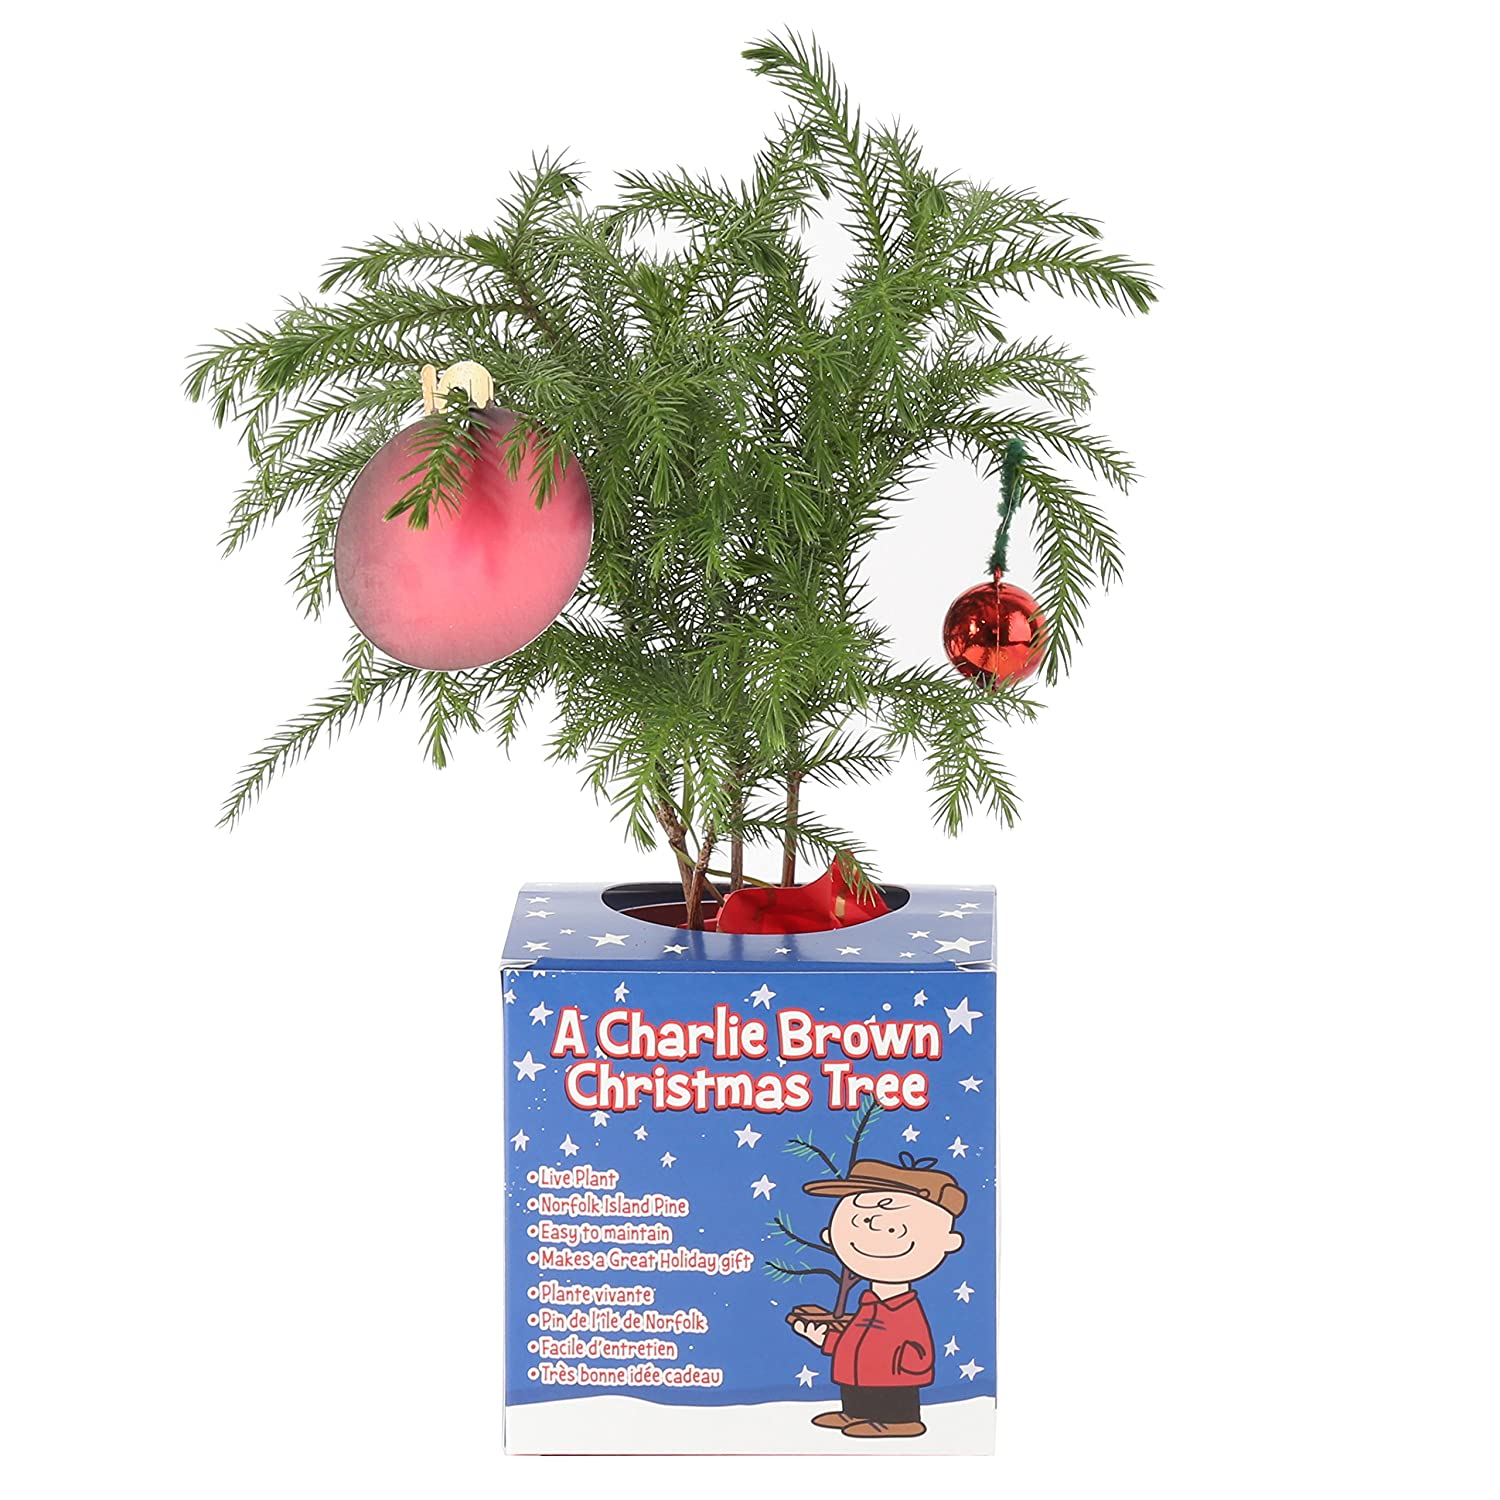 Island Christmas Tree.Costa Farms Live Charlie Brown Christmas Tree 10 To 12 Inches Tall Ships Fresh From Our Farm Great As Holiday Gift Or Christmas Decoration